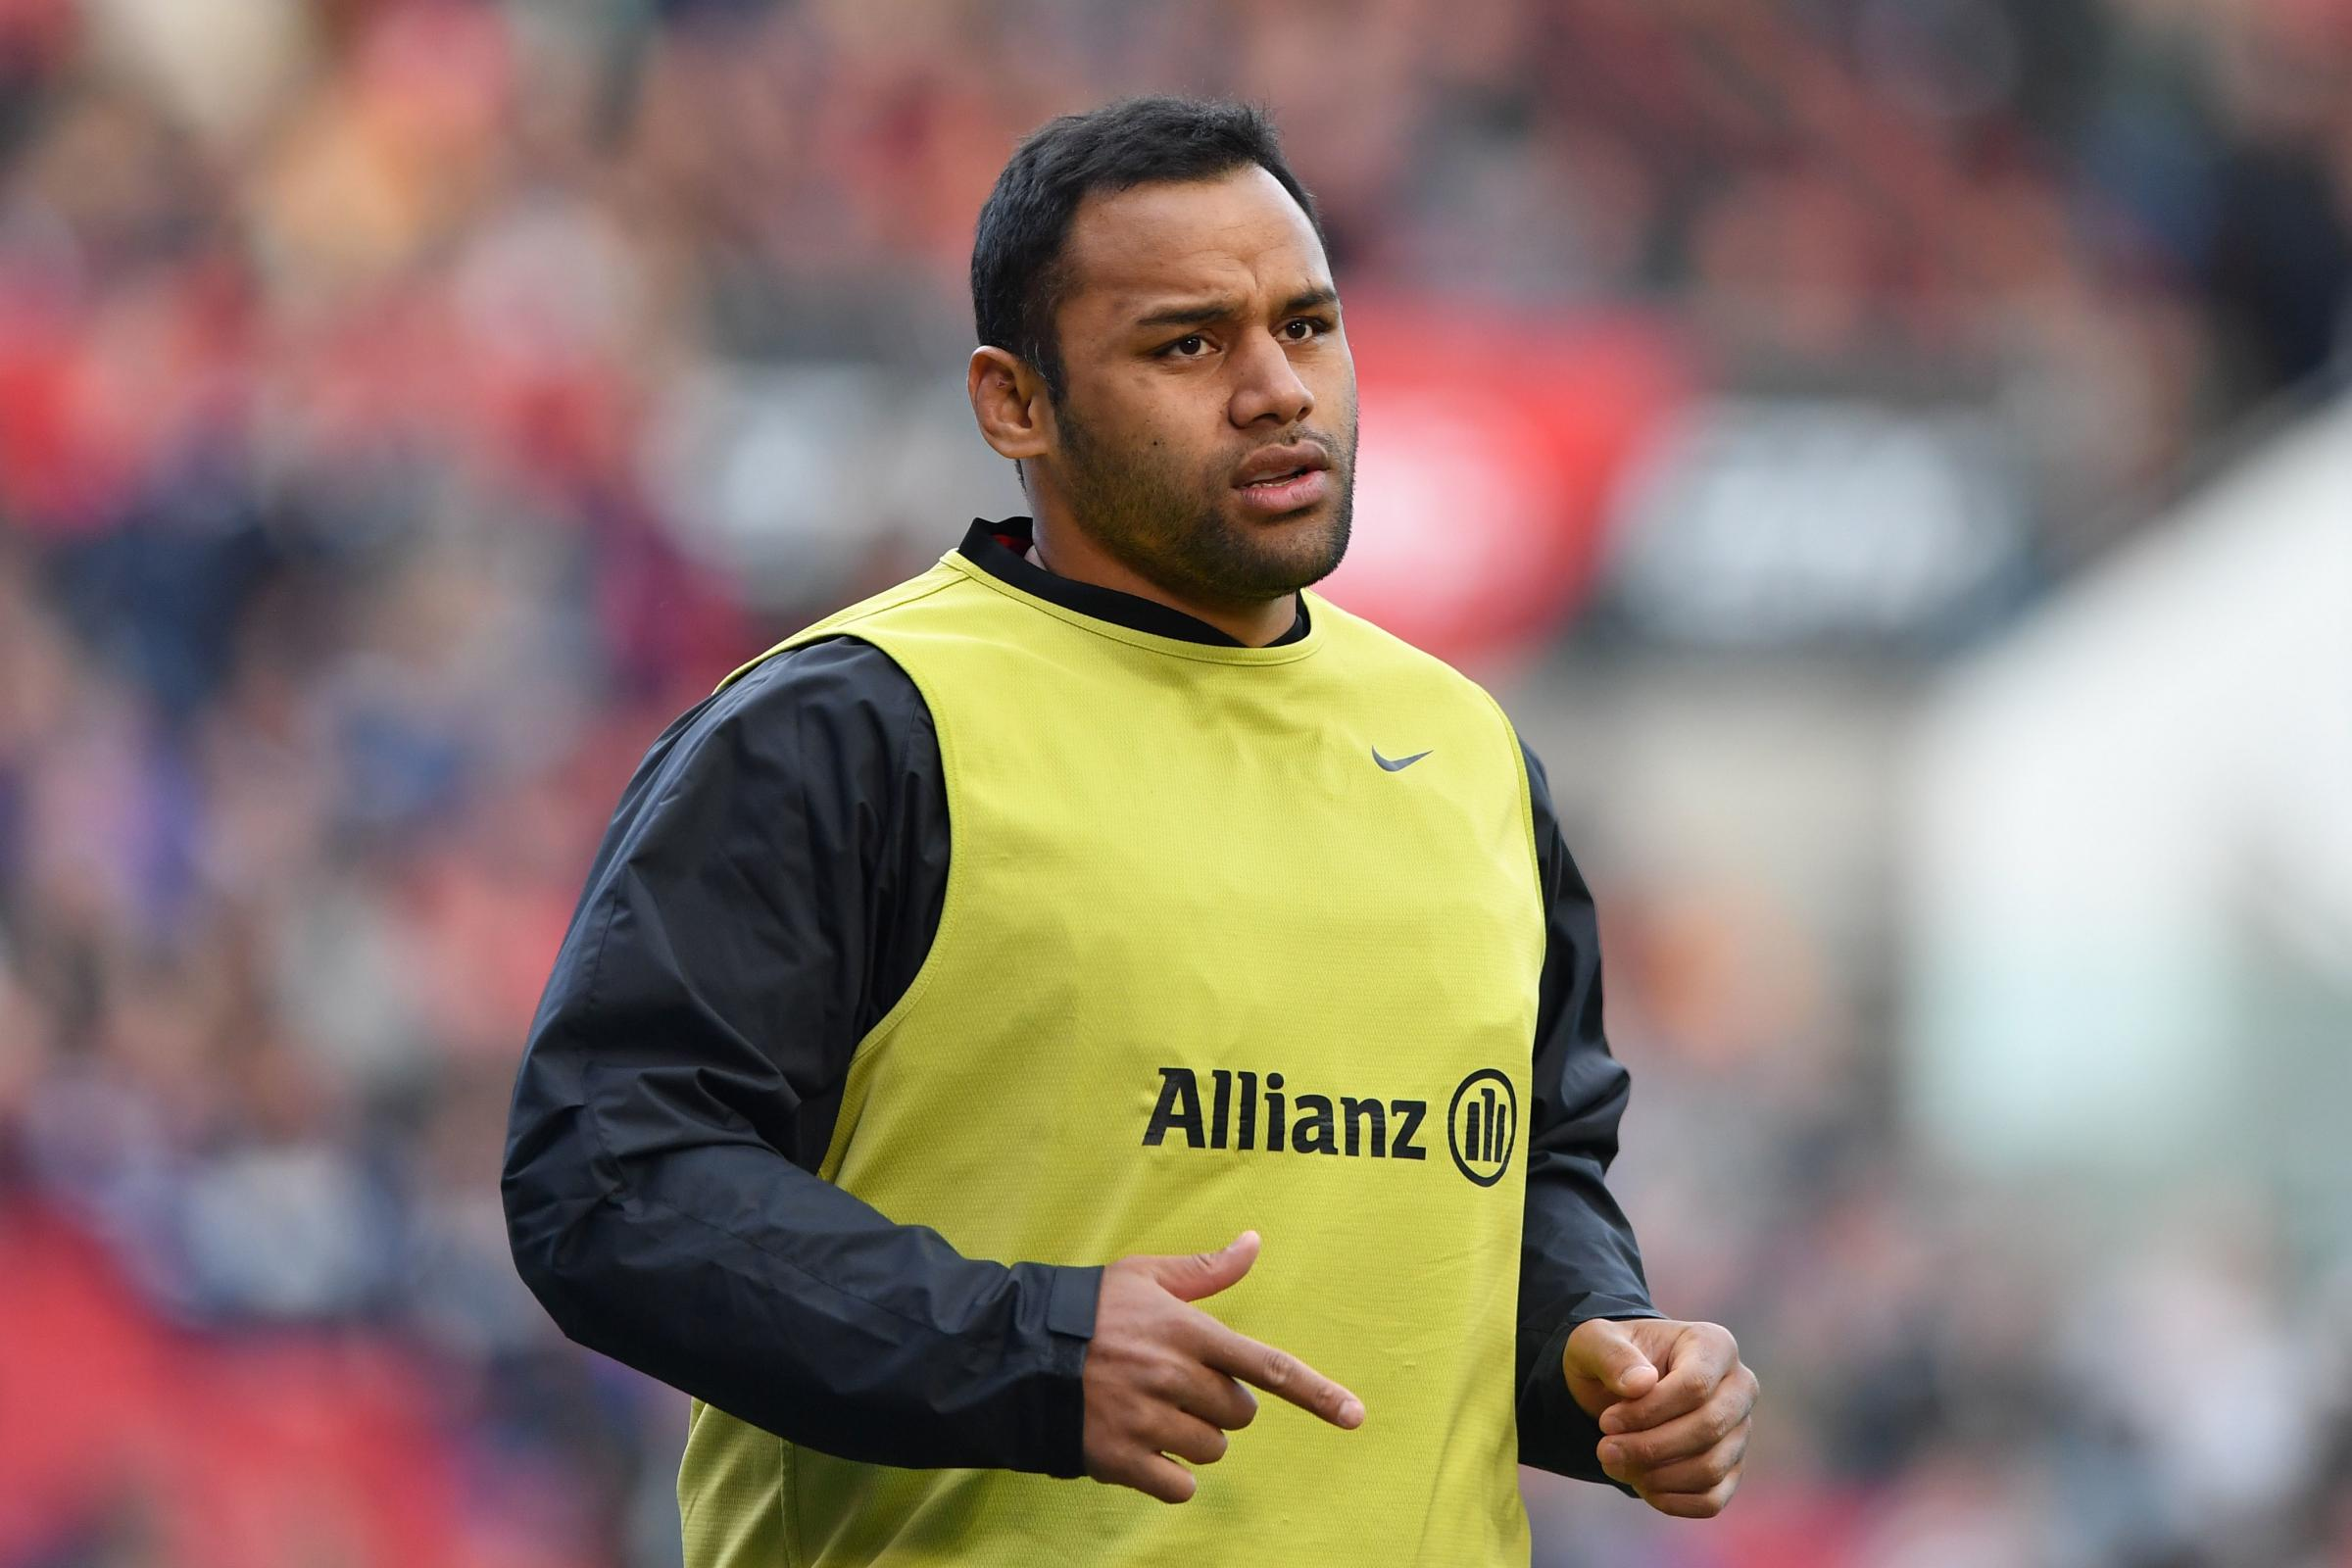 Billy Vunipola was booed by fans as Saracnes lost to Bristol in the Gallagher Premiership